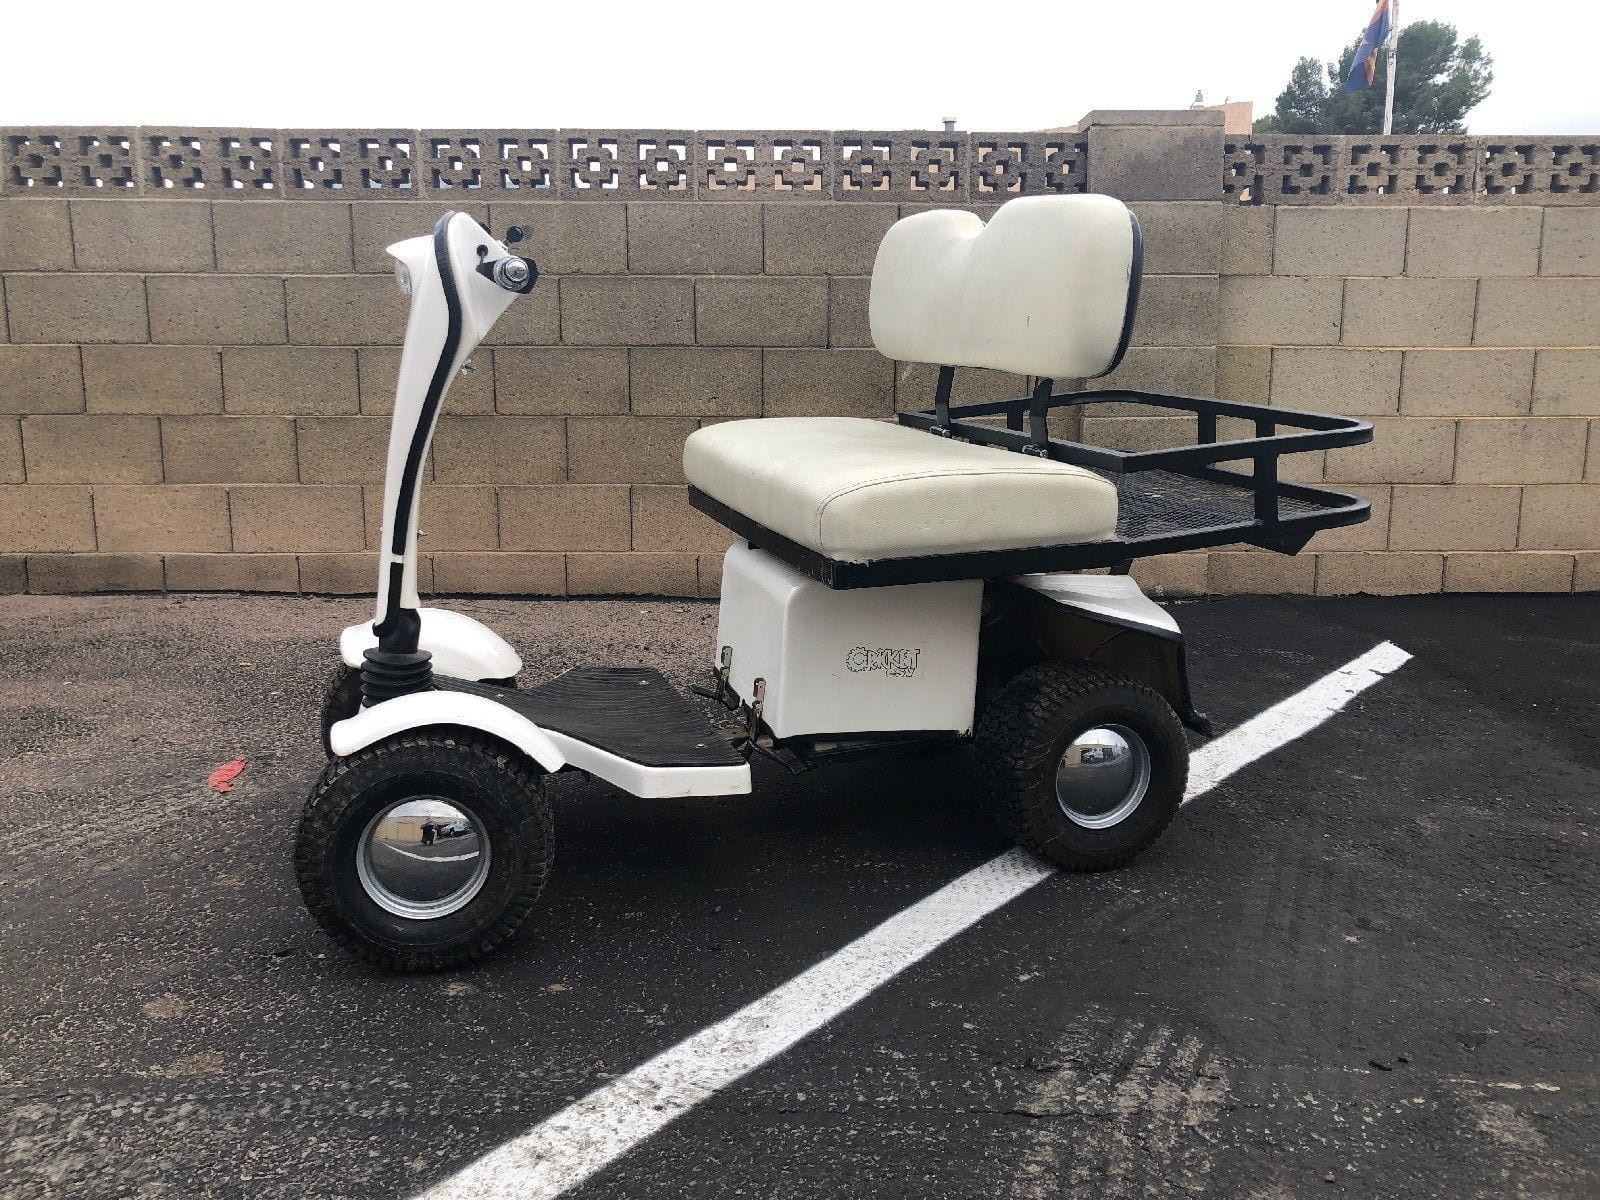 Cricket Esv Mini Golf Cart Mobility Scooter Invacare Senior